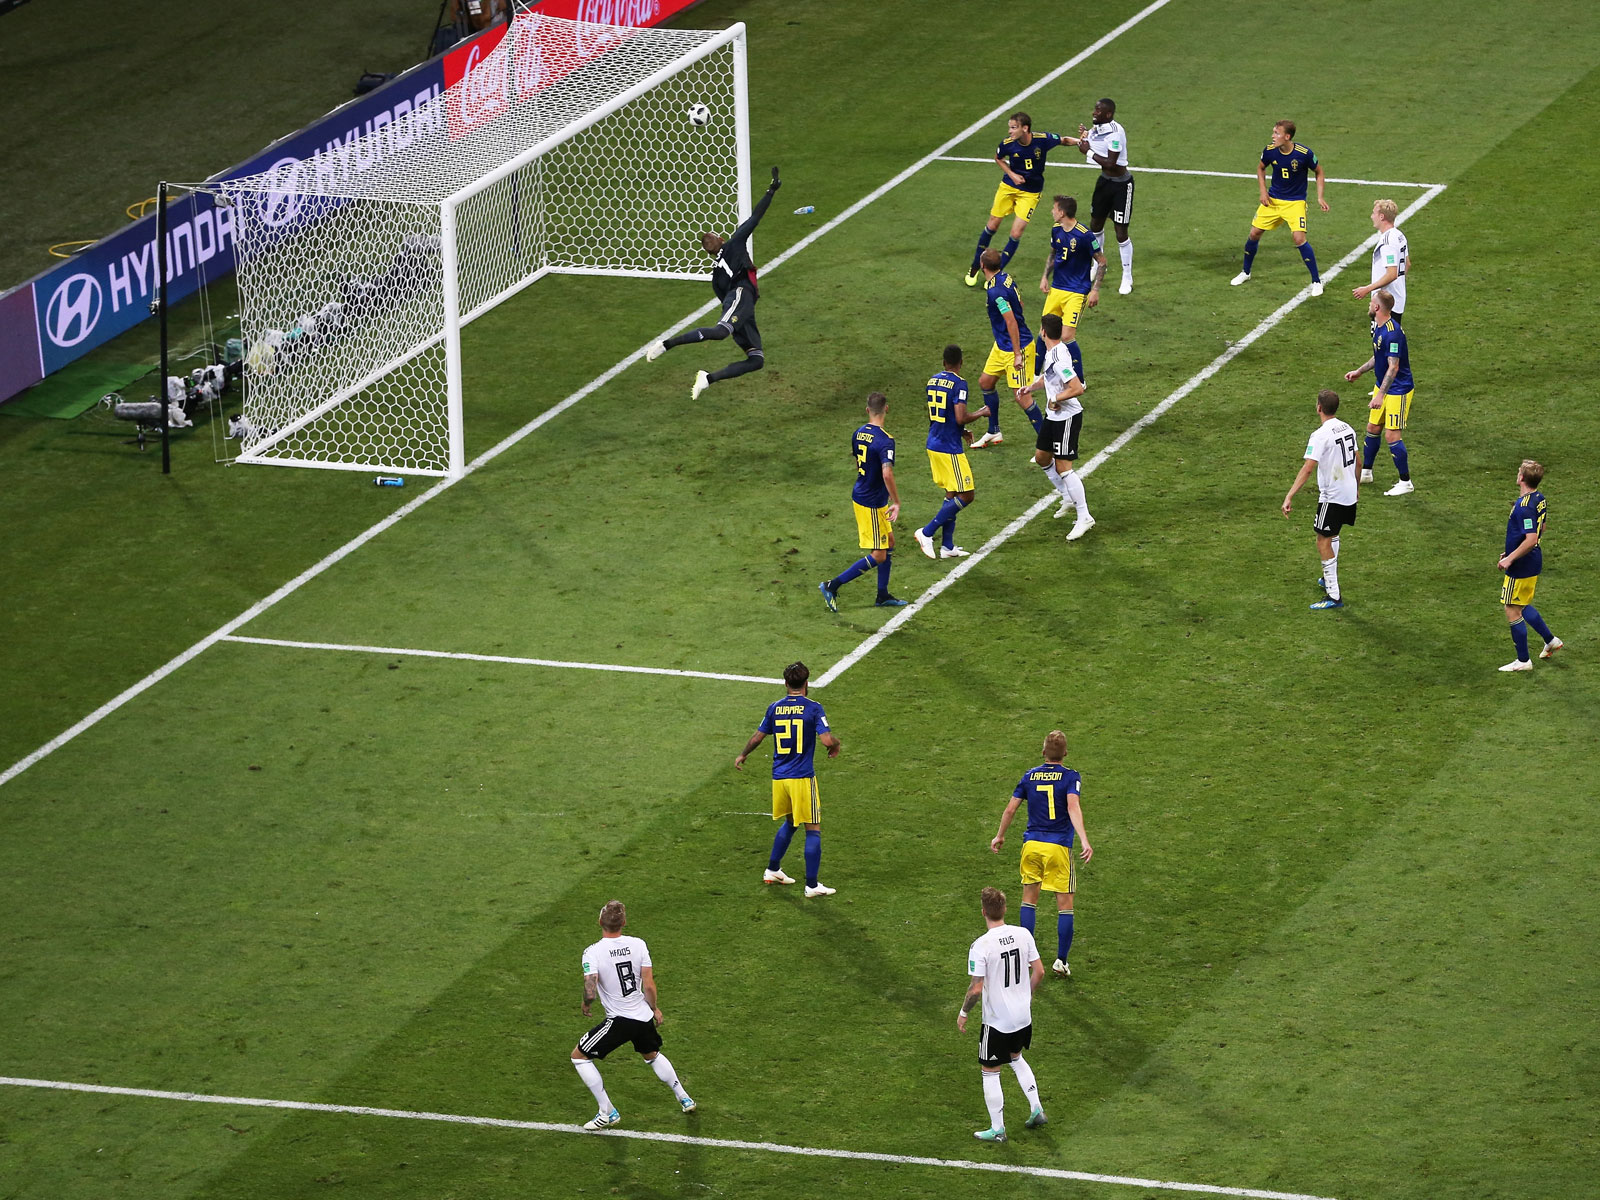 Toni Kroos scores for Germany vs. Sweden in the World Cup